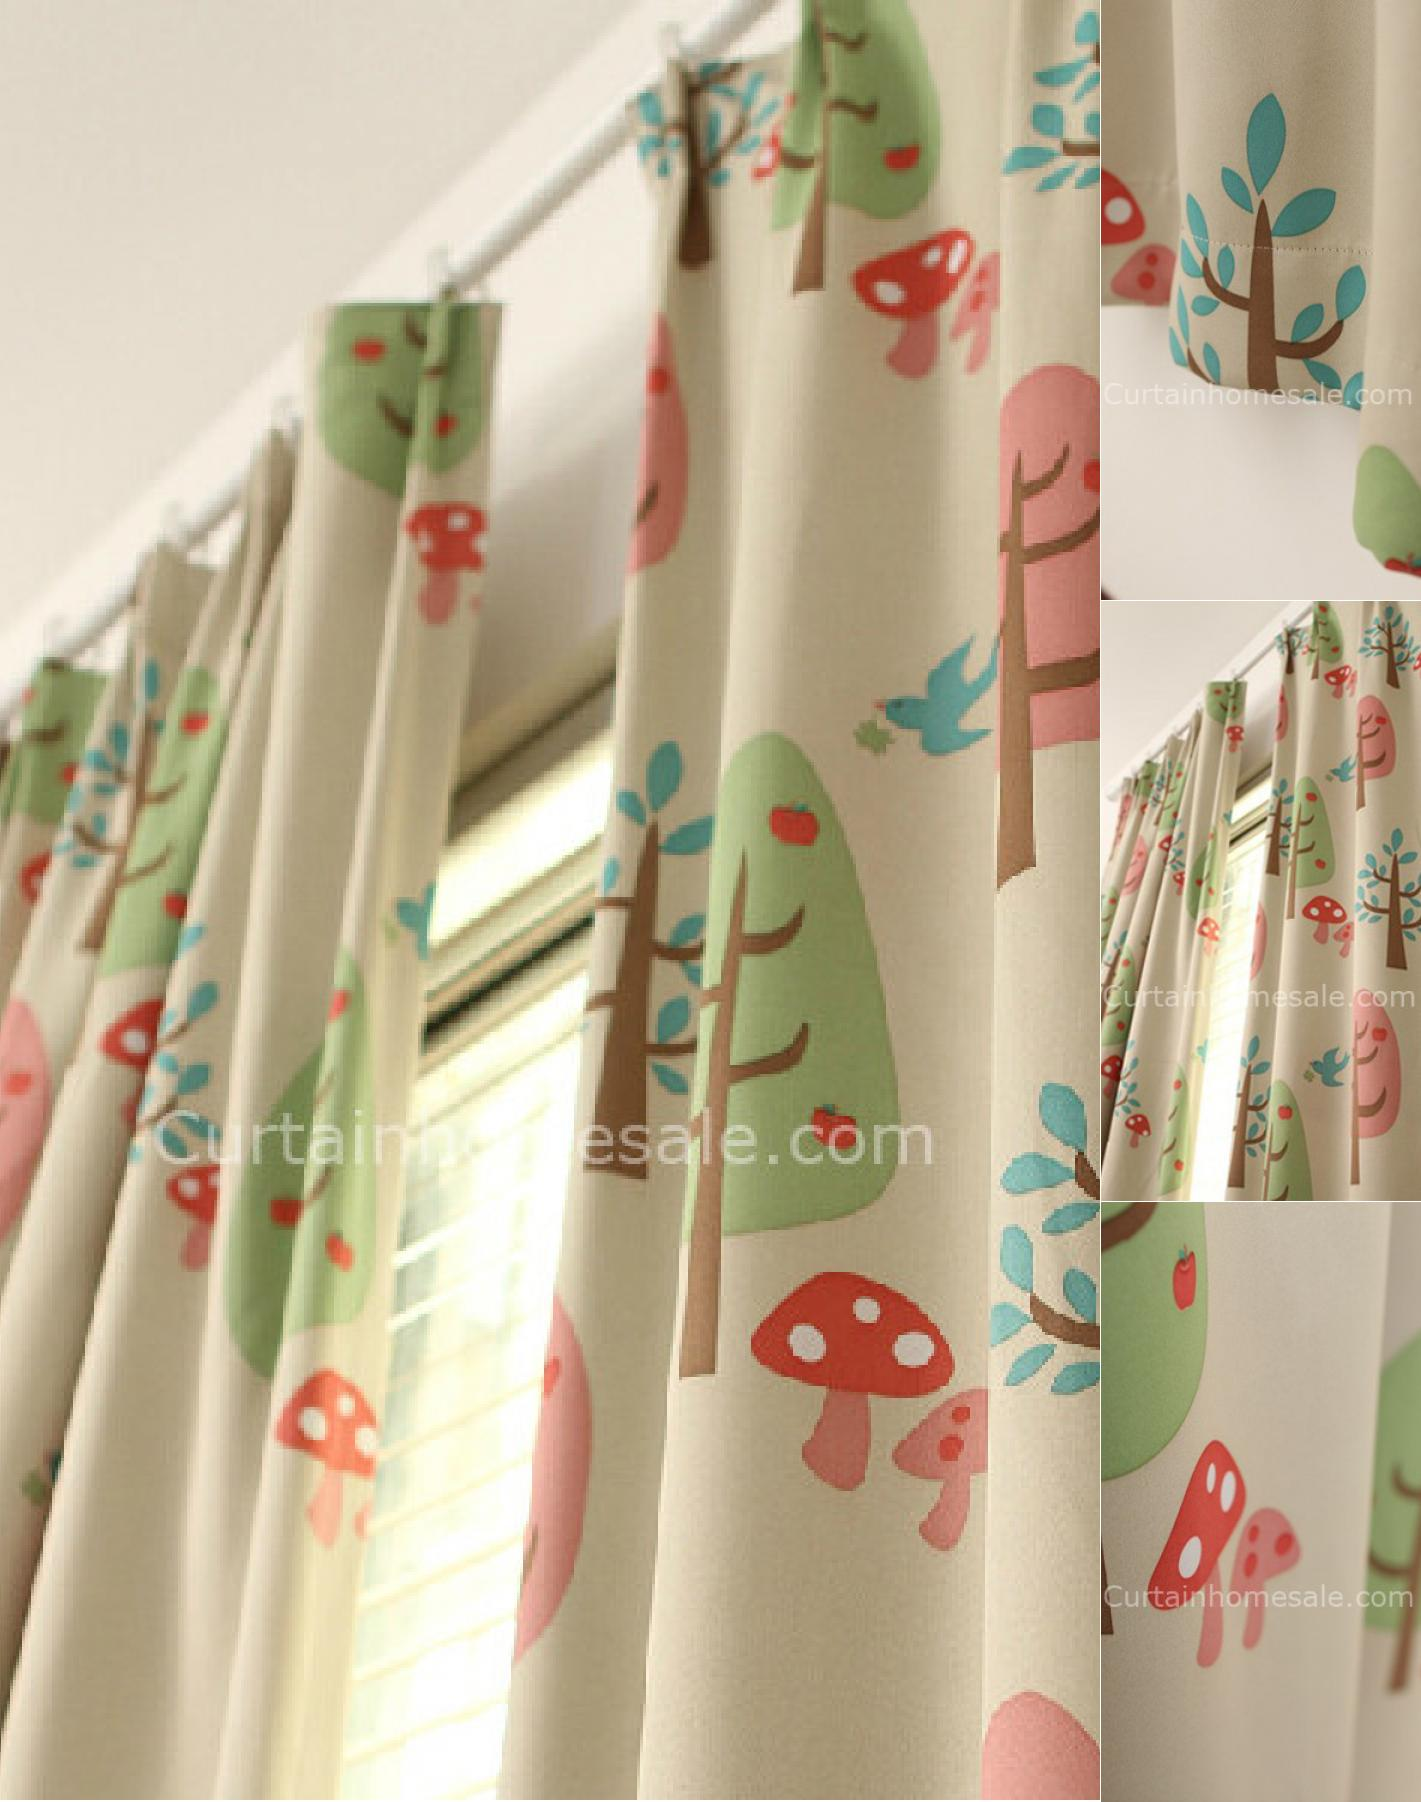 Children's curtain cutest blackout Children's trees and mushrooms printed pleated curtains JGCABXF